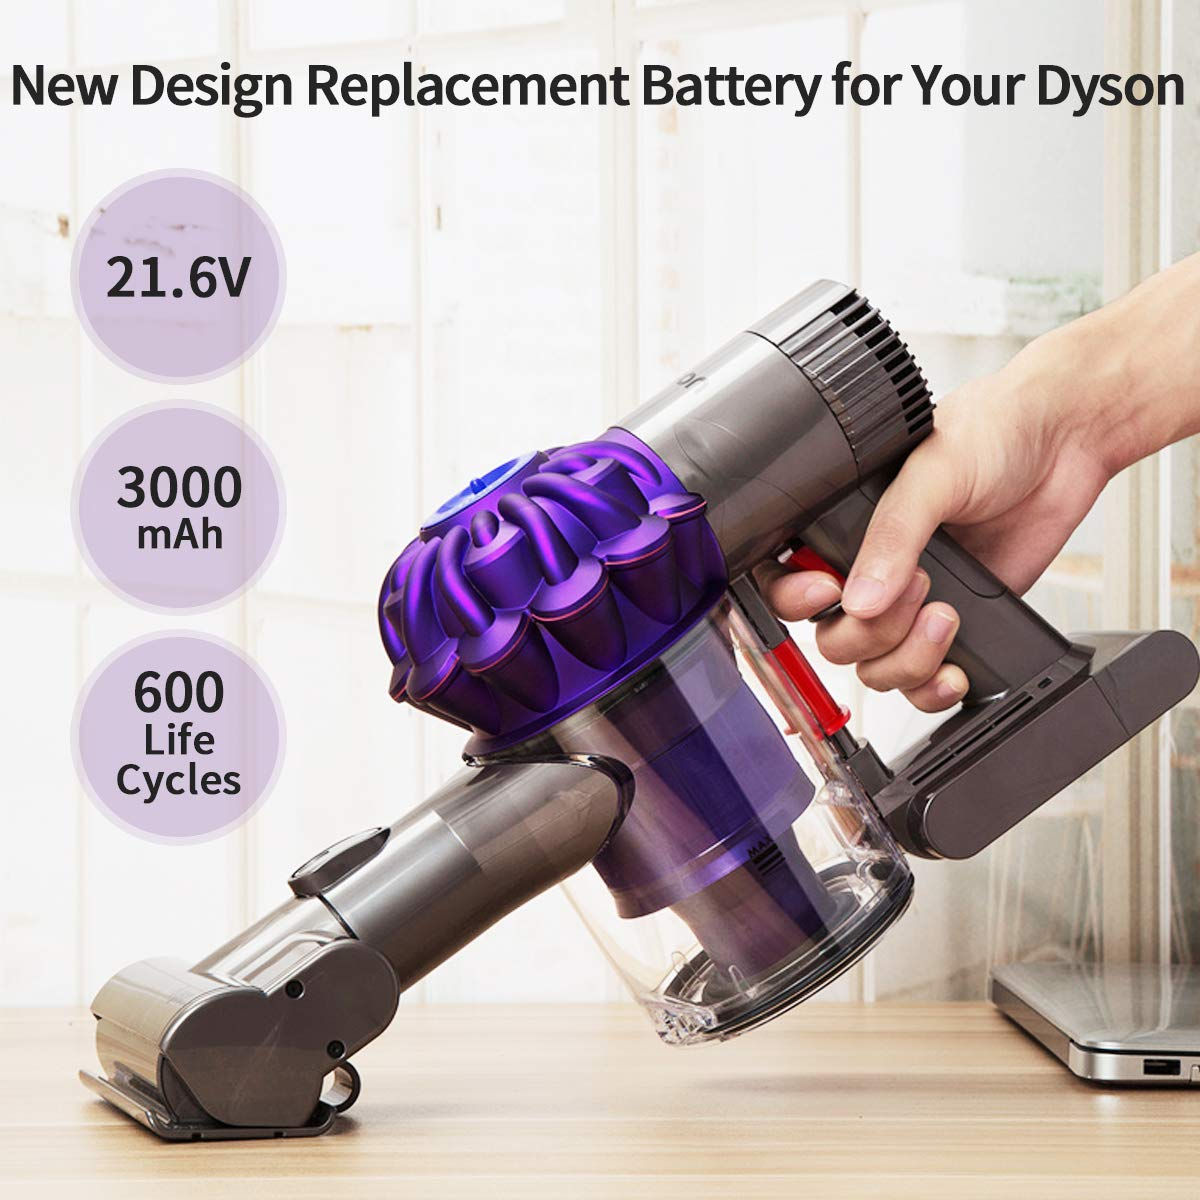 morpilot Dyson V6 Battery 3000mAh 21.6v Li-ion Replacement Battery or Dyson DC59 DC58 DC61 DC62 DC72 DC74 Handheld Vacuum Cleaner Batteries - with 2 Pack Free Dyson v6 Filter